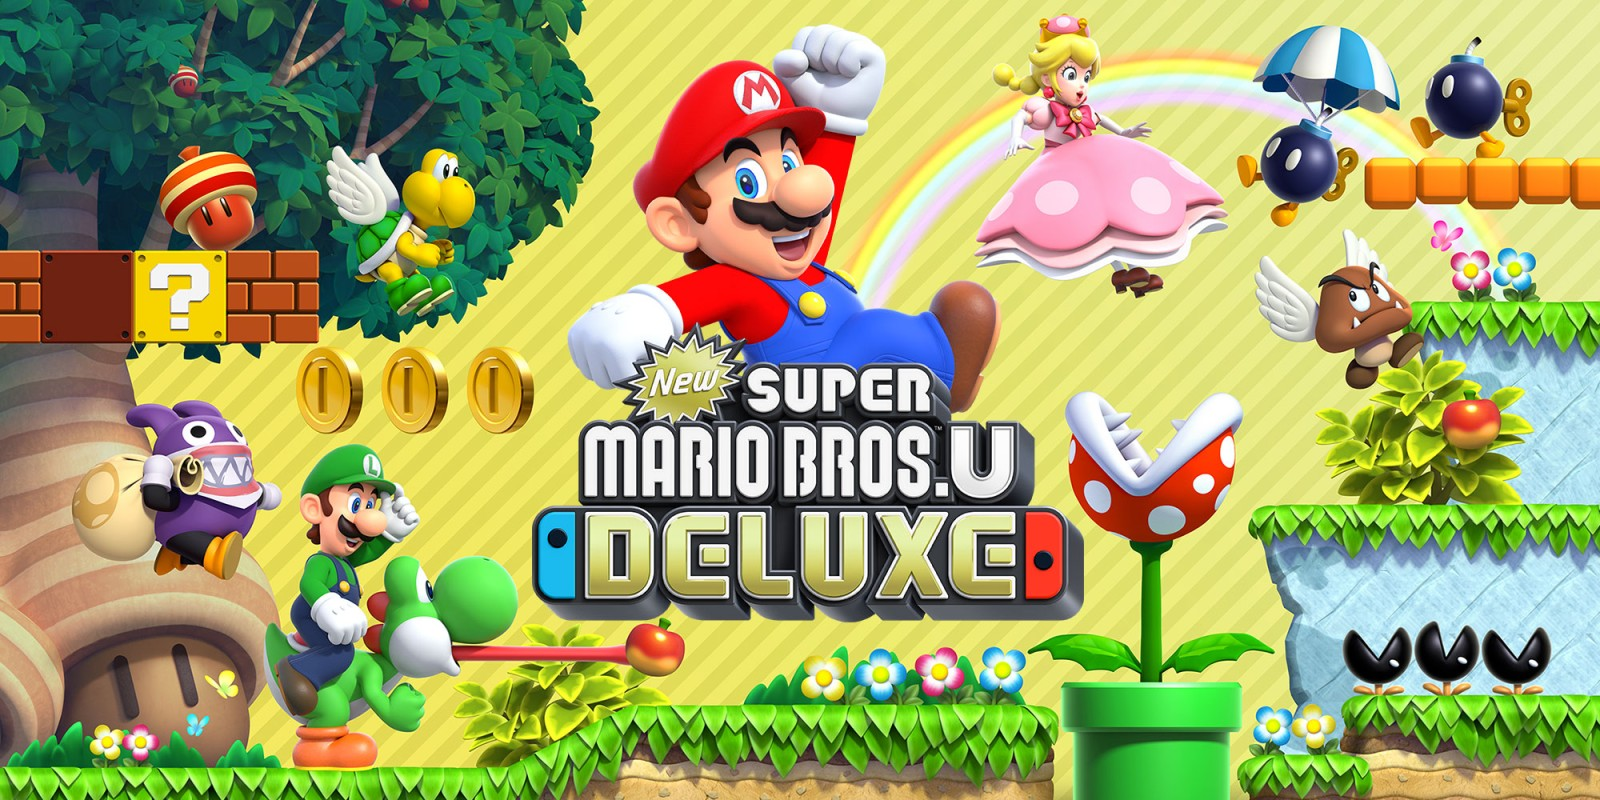 MAR10 deals now live: Mario Switch games at $40 from most major retailers + console discounts